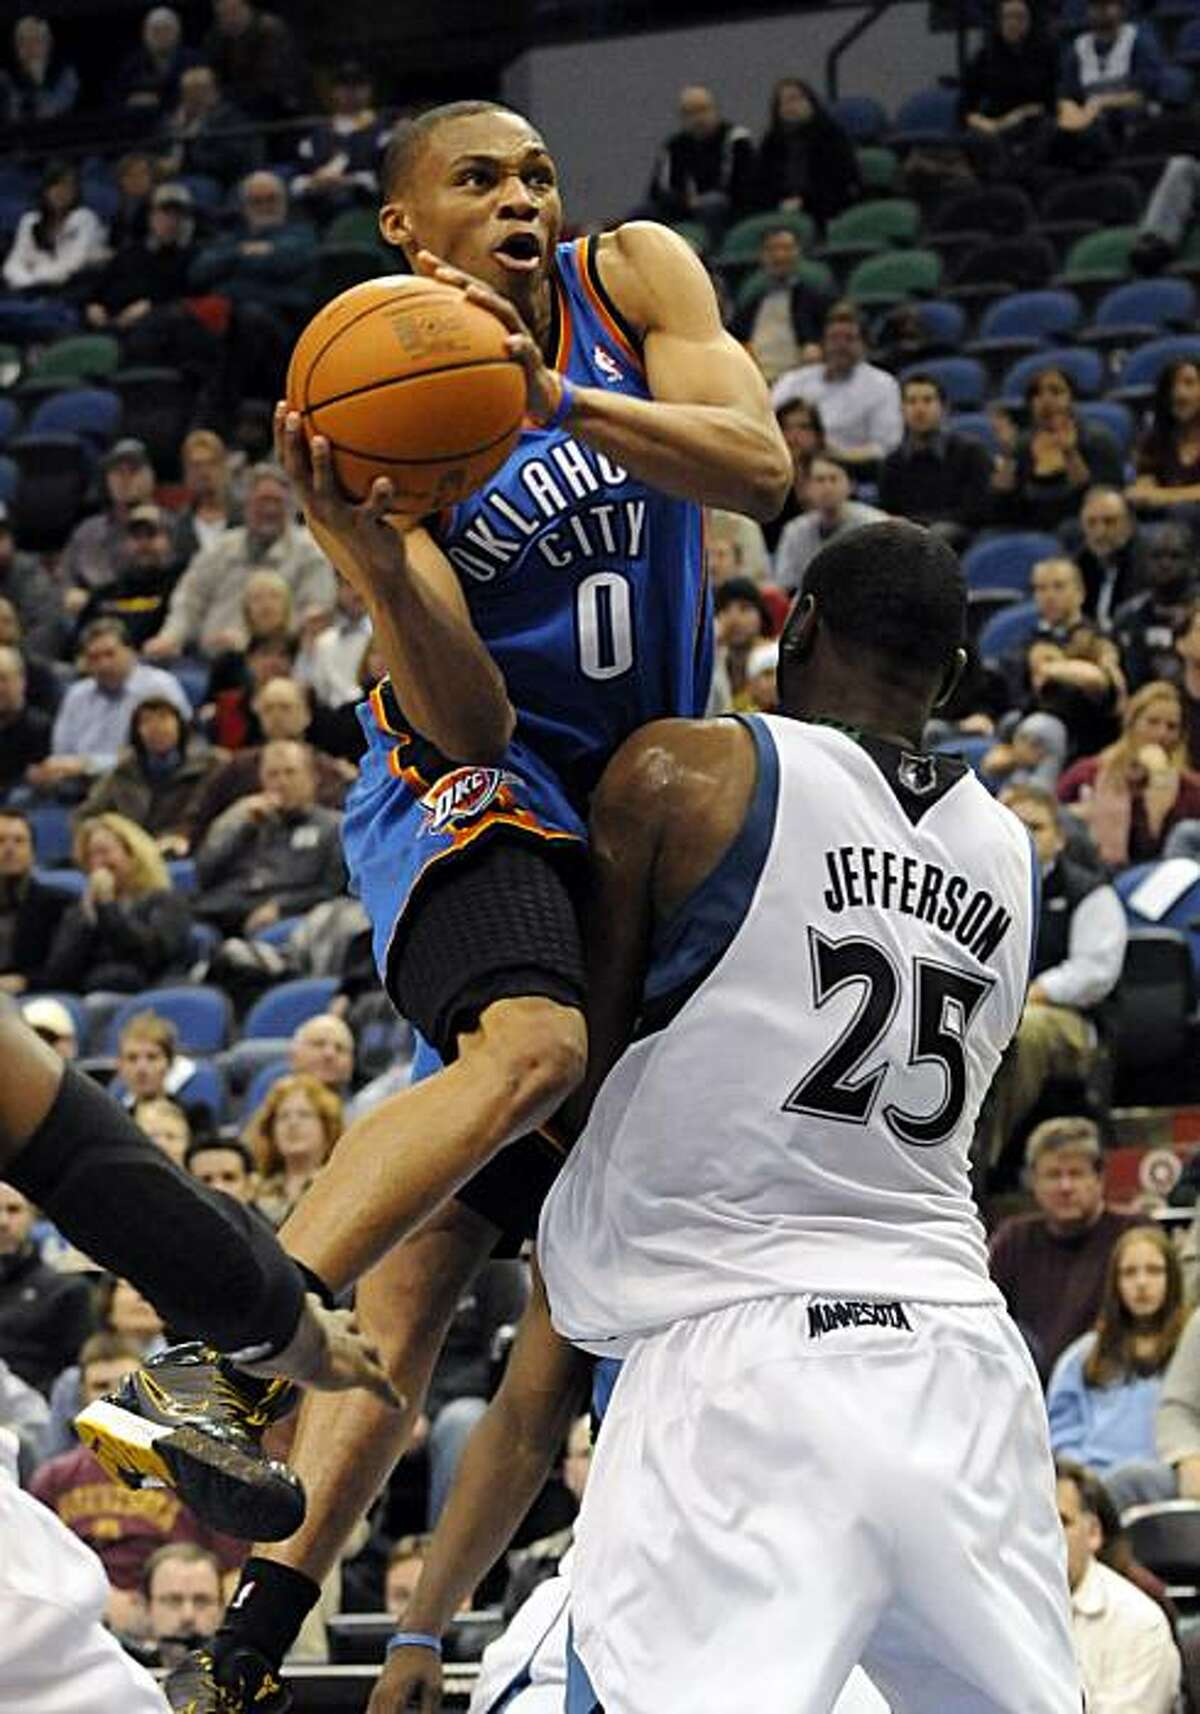 Oklahoma City Thunder's Russell Westbrook (0) attempts a shot against the defense of the Minnesota Timberwolves in the second half of an NBA basketball game Wednesday, Jan. 20, 2010 in Minneapolis. The Thunder won 94-92.